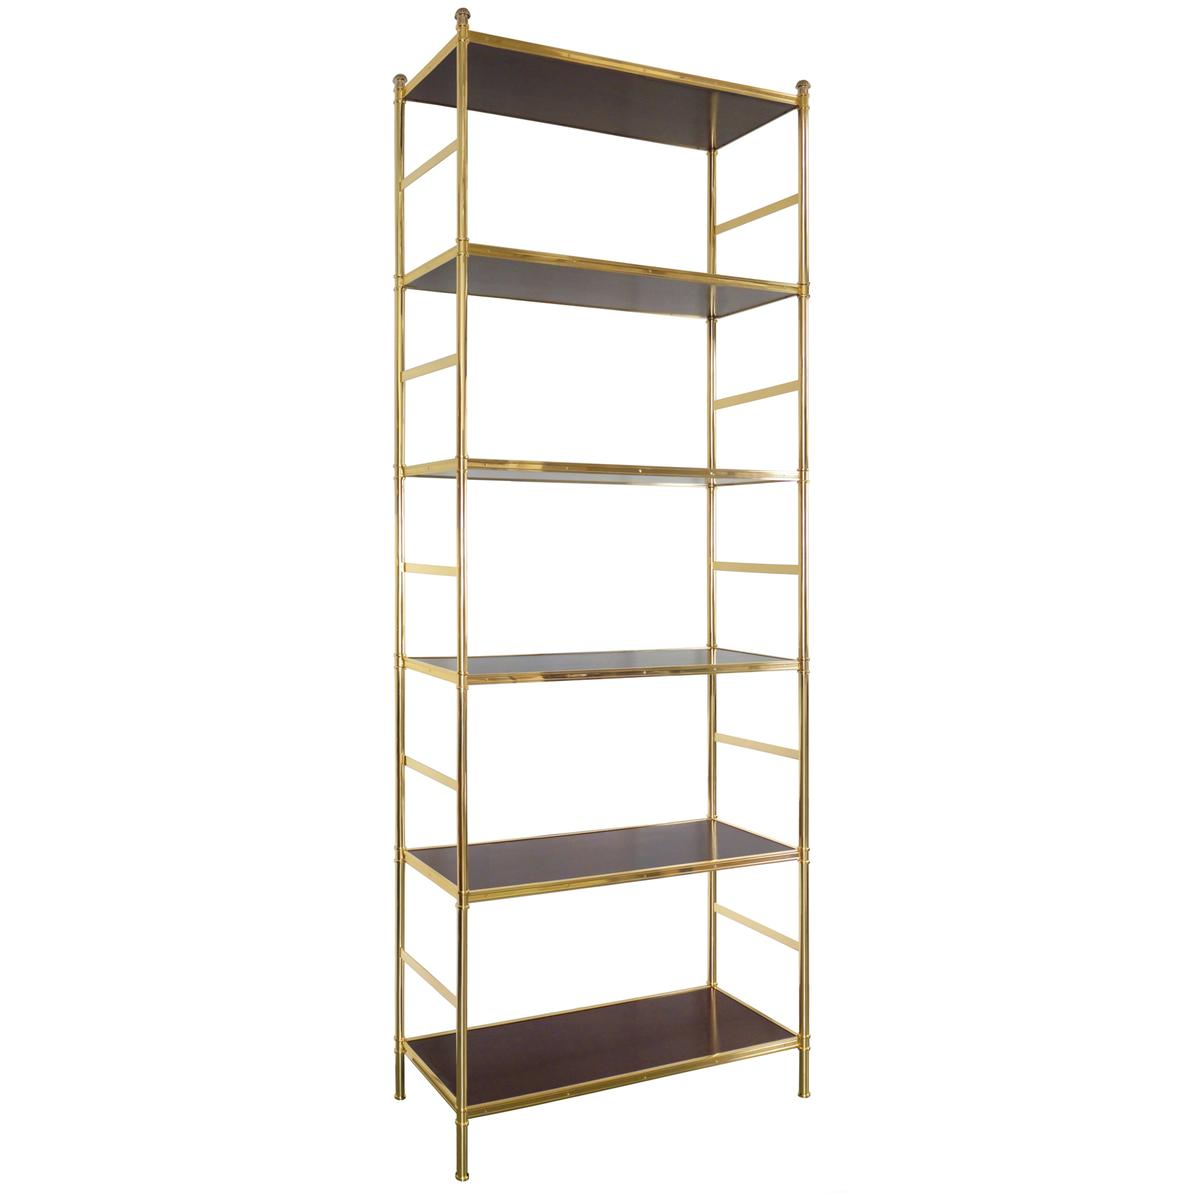 The Cole Porter etagere from Victoria & Son